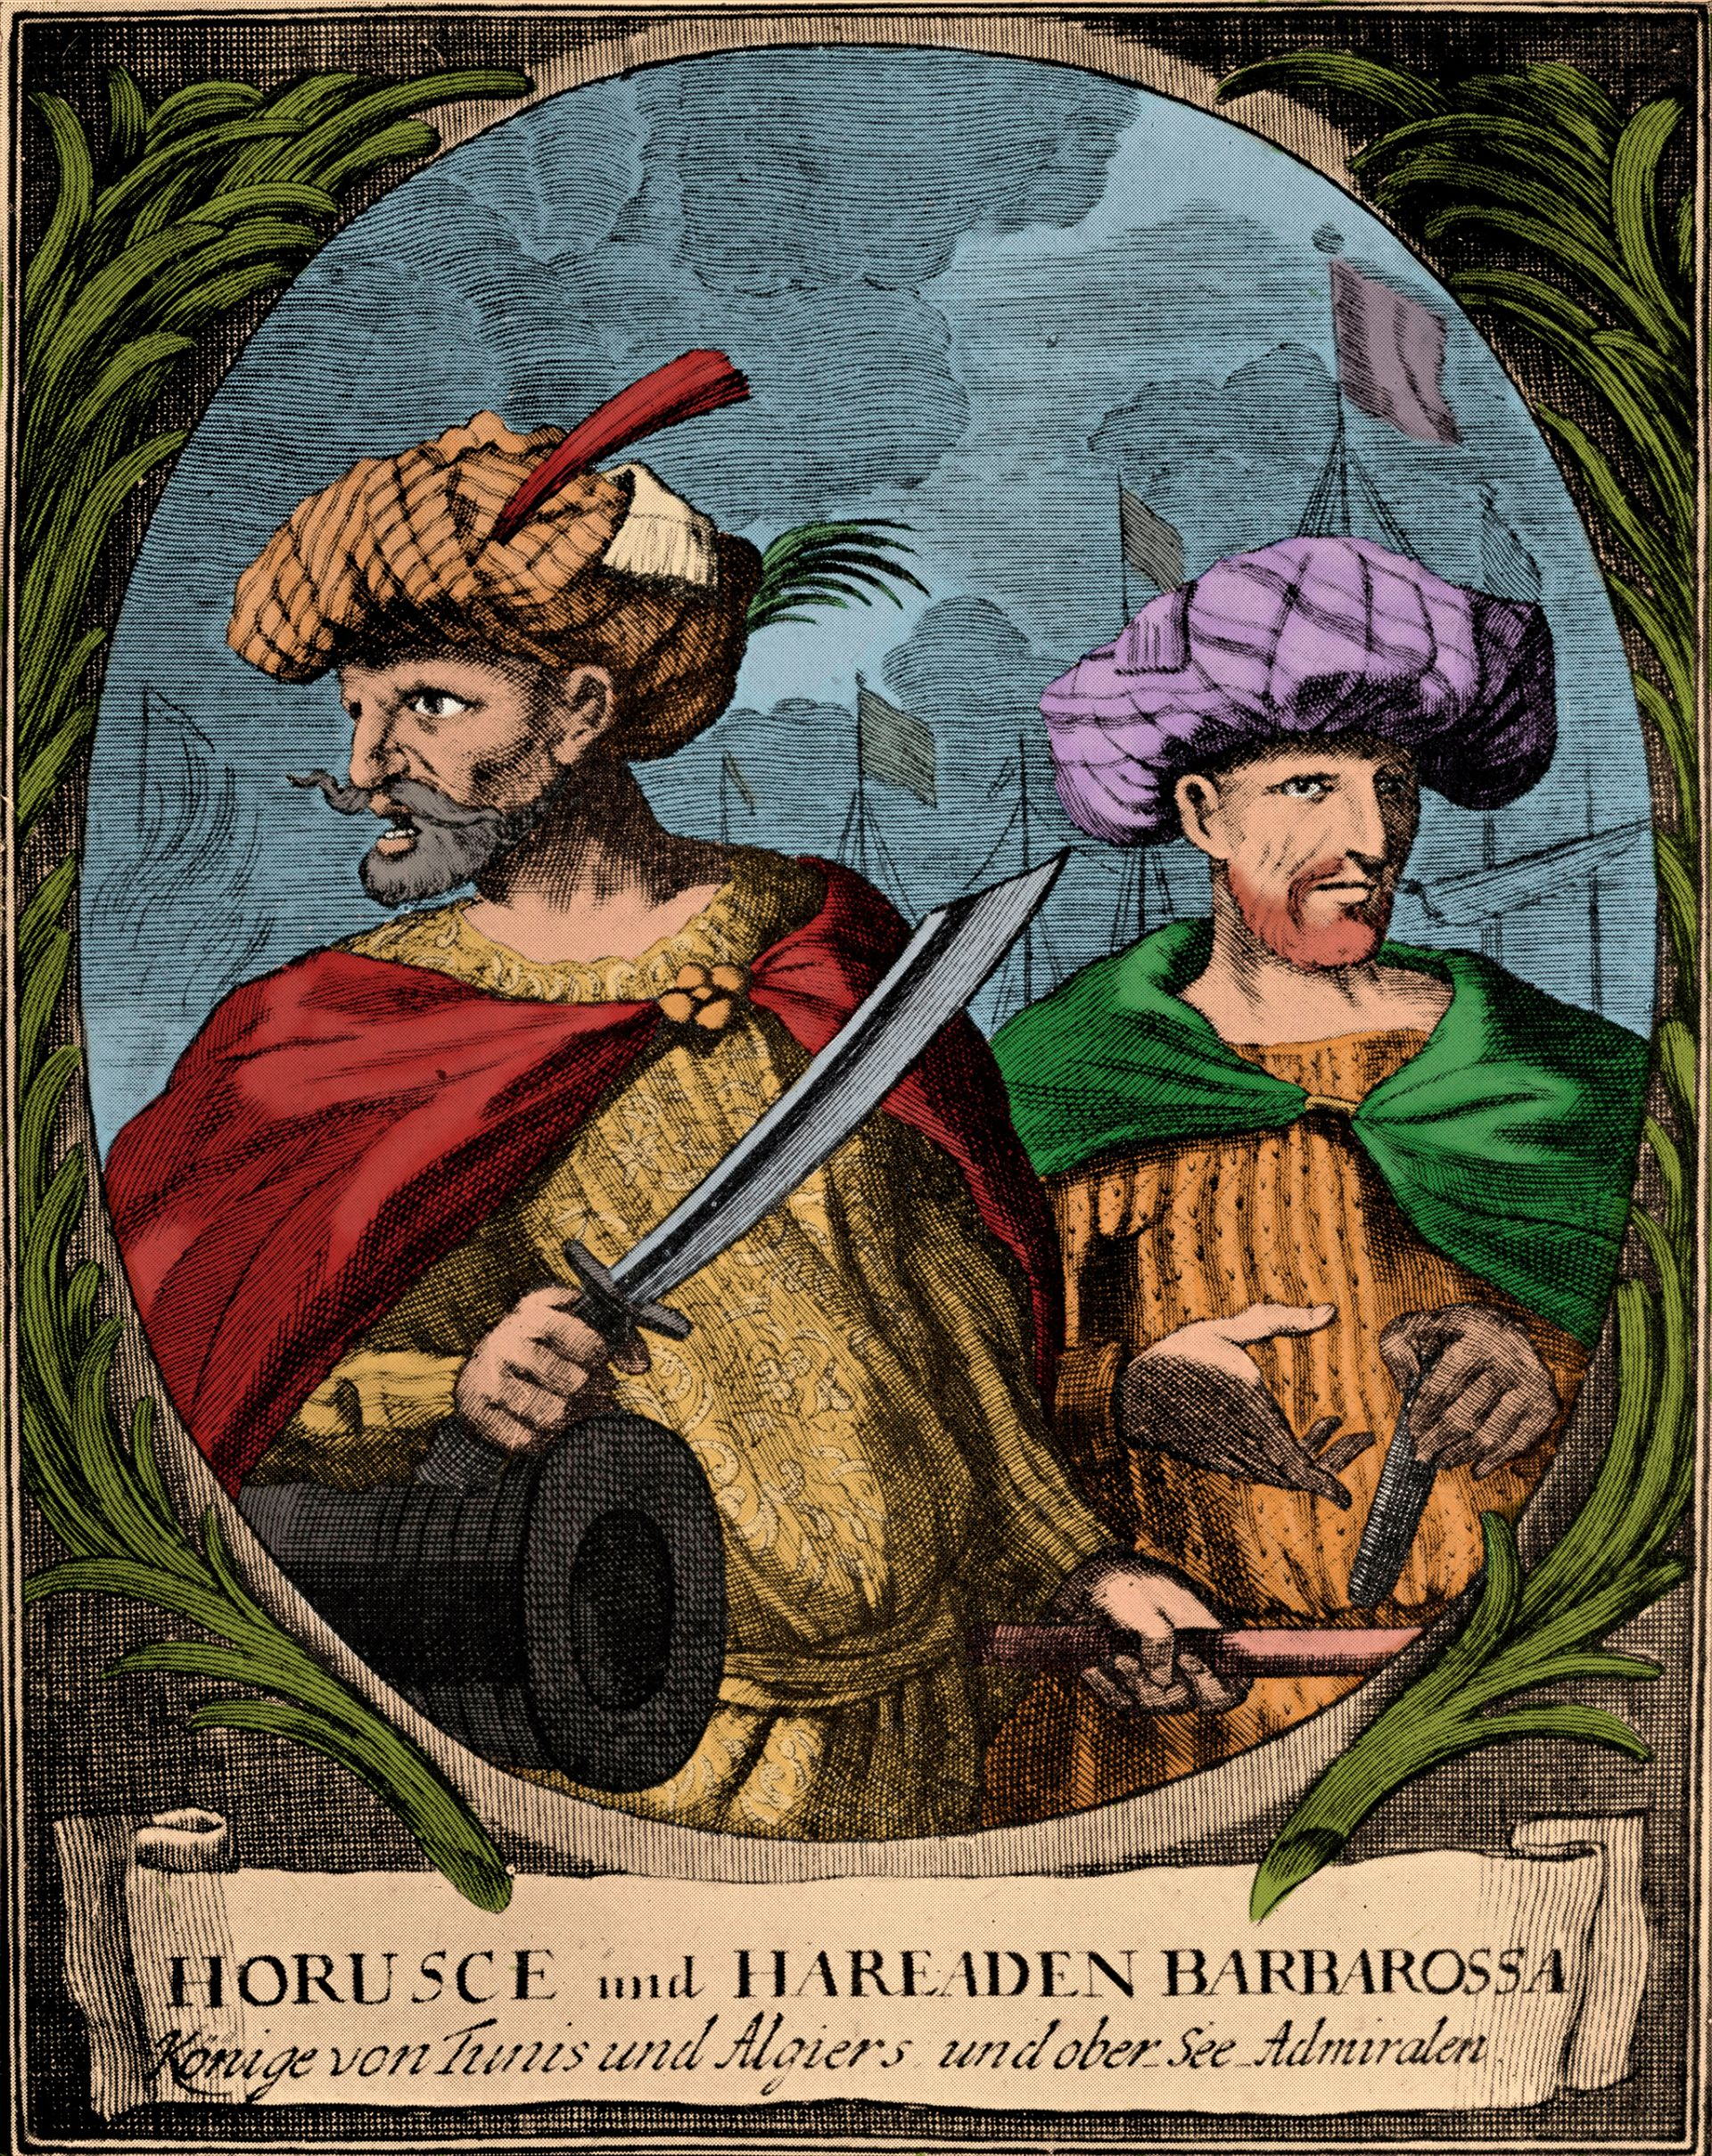 East Coast Auto >> Corsair Pirates   What Are Corsairs?   DK Find Out